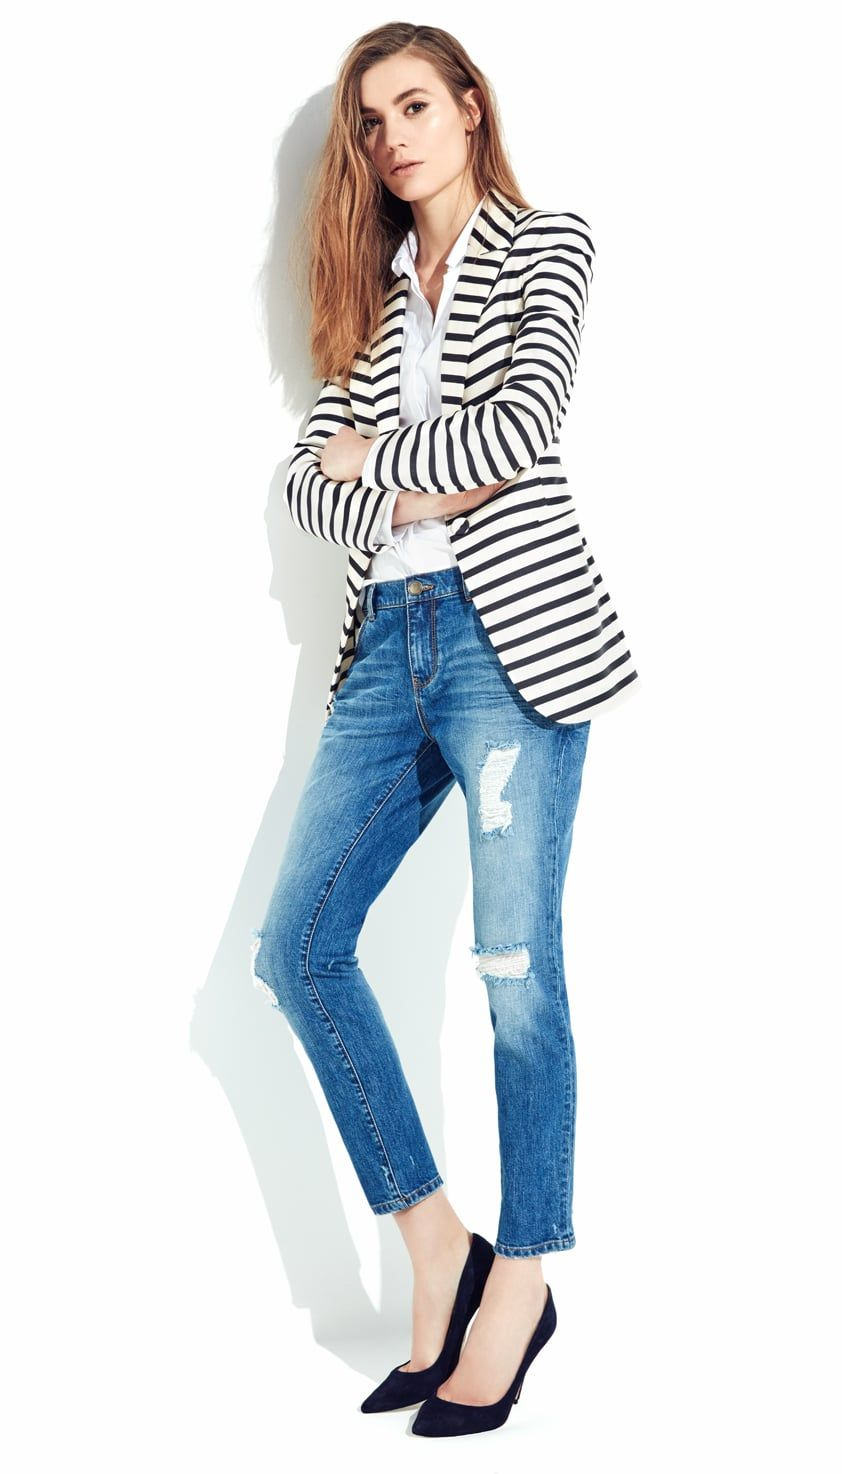 Bayan Jean Pantolon Modelleri Kot Denim Fashion Women Bell Sleeve Top